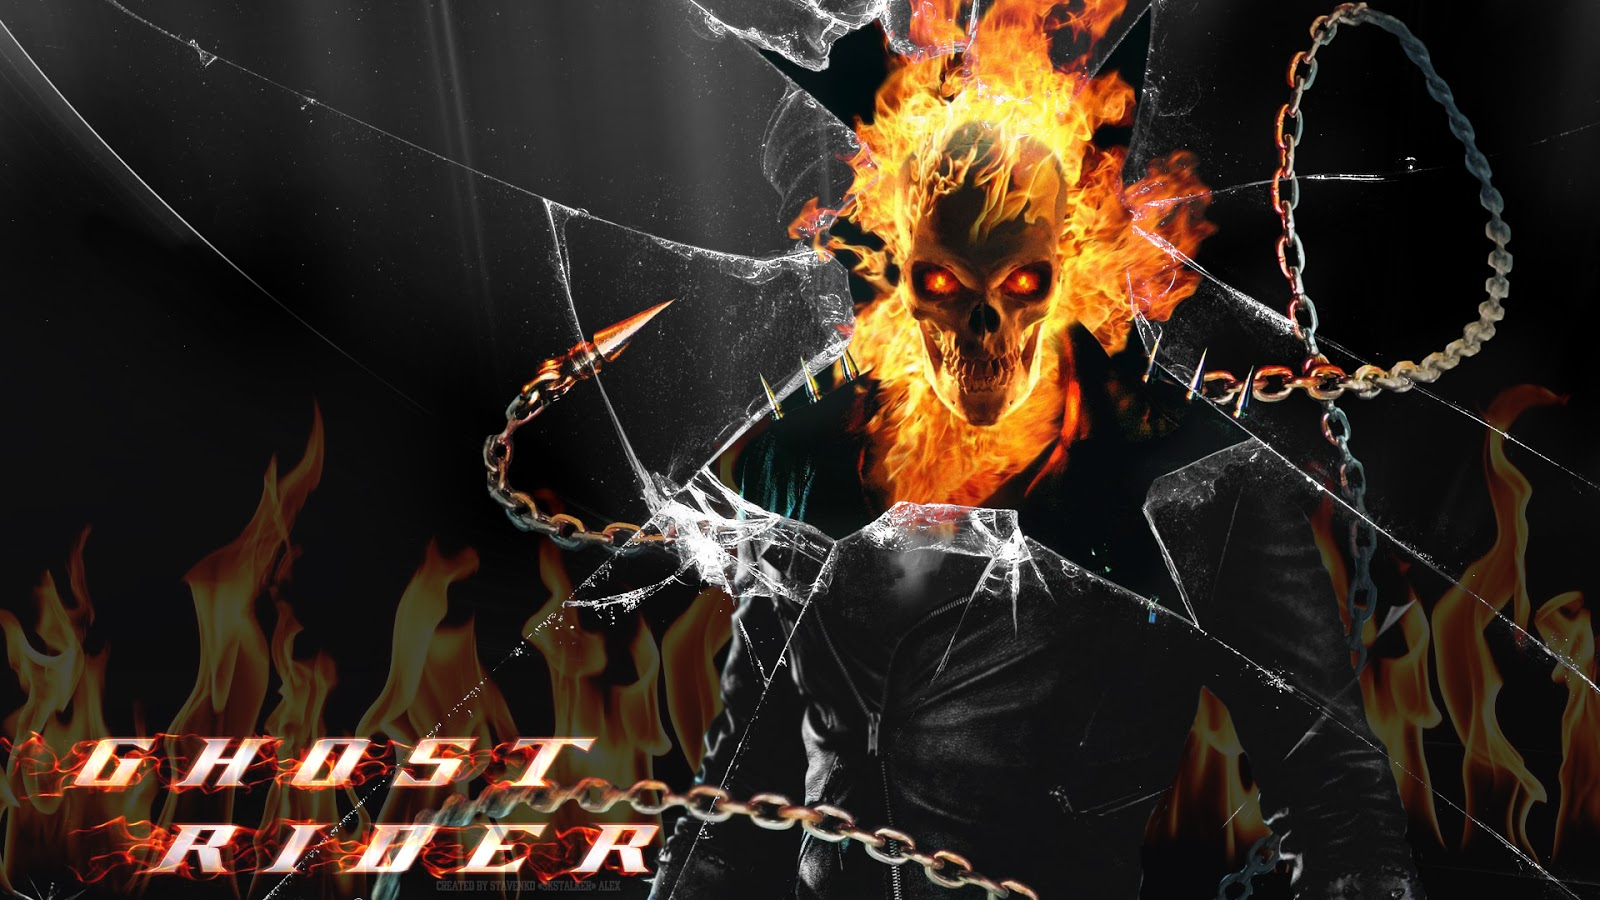 Ghost Rider (2007) Hindi Dubbed Movie *BluRay*